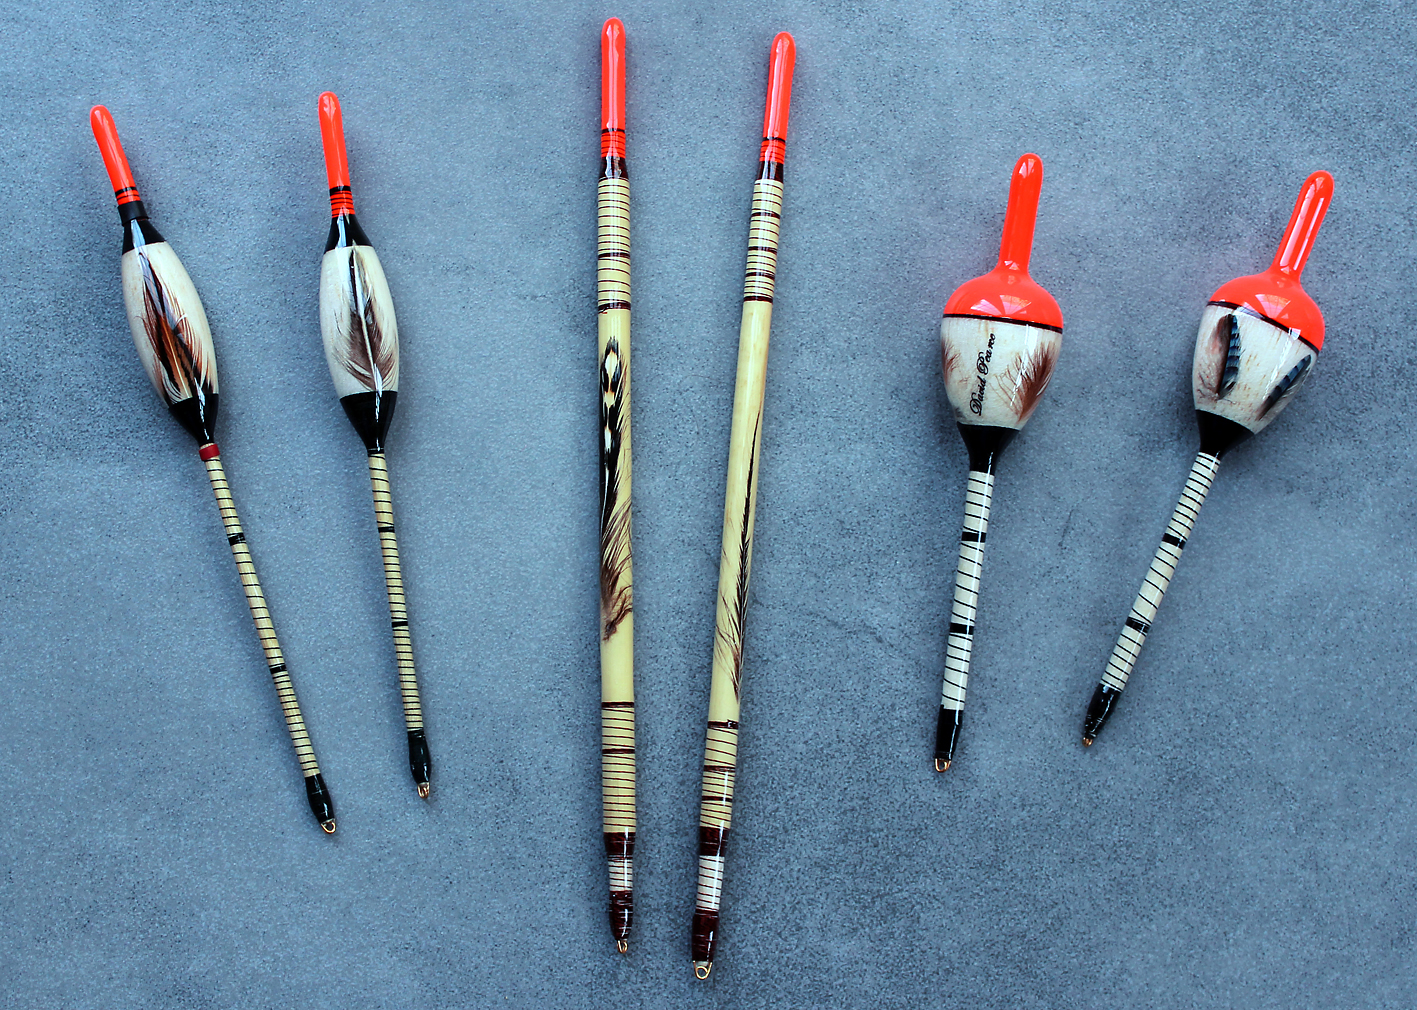 My own set of David Pearce floats, not just stunning lookers but they work perfectly too